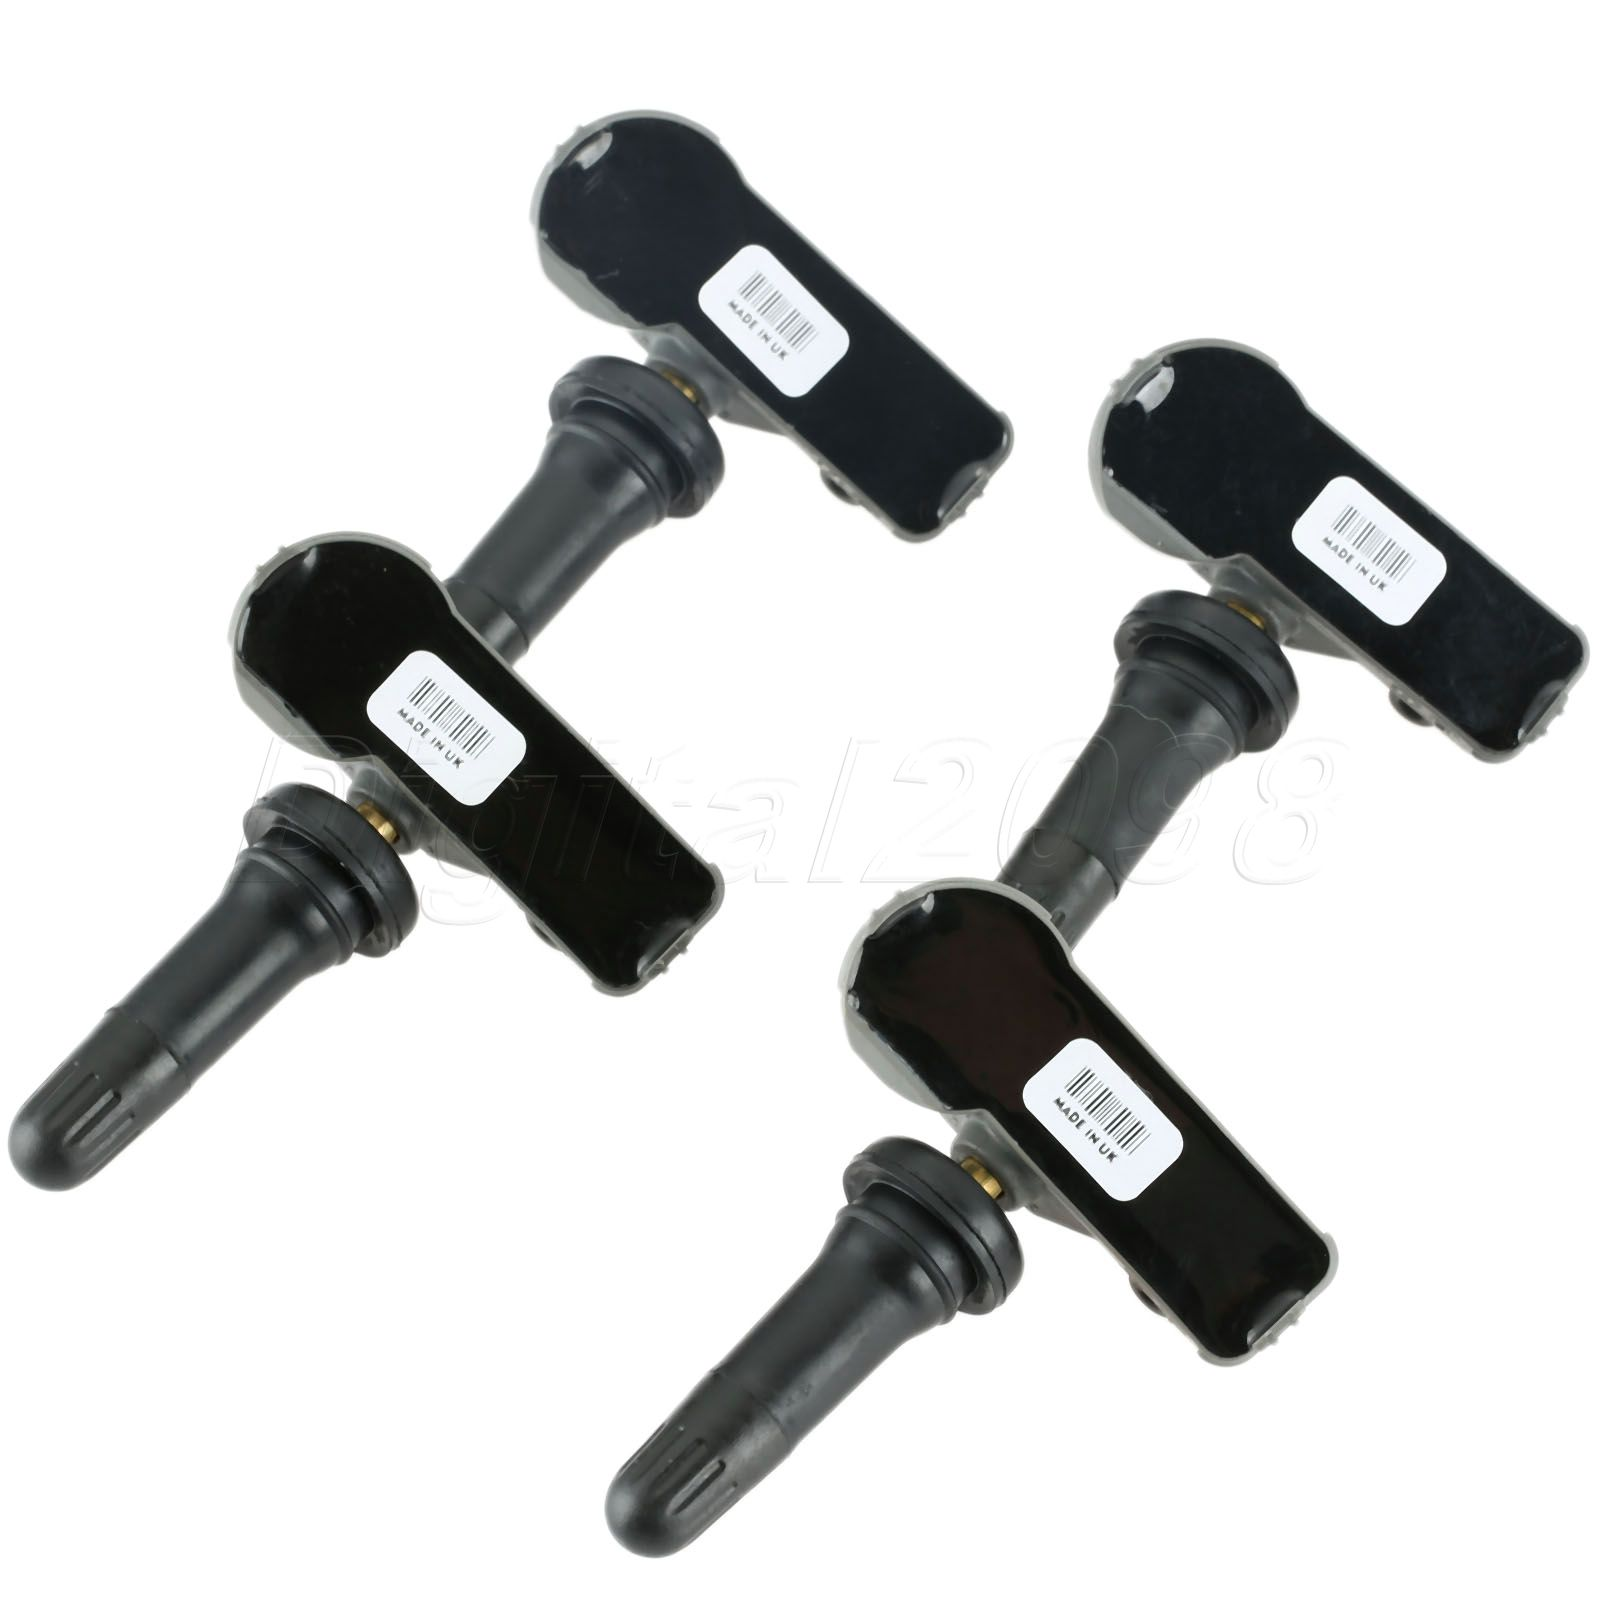 ФОТО Yetaha 4pcs High Quality TPMS Tire Pressure Sensor OEM 13581558 315MHz For Chevrolet For GMC Cadillac For Buick Free Shipping